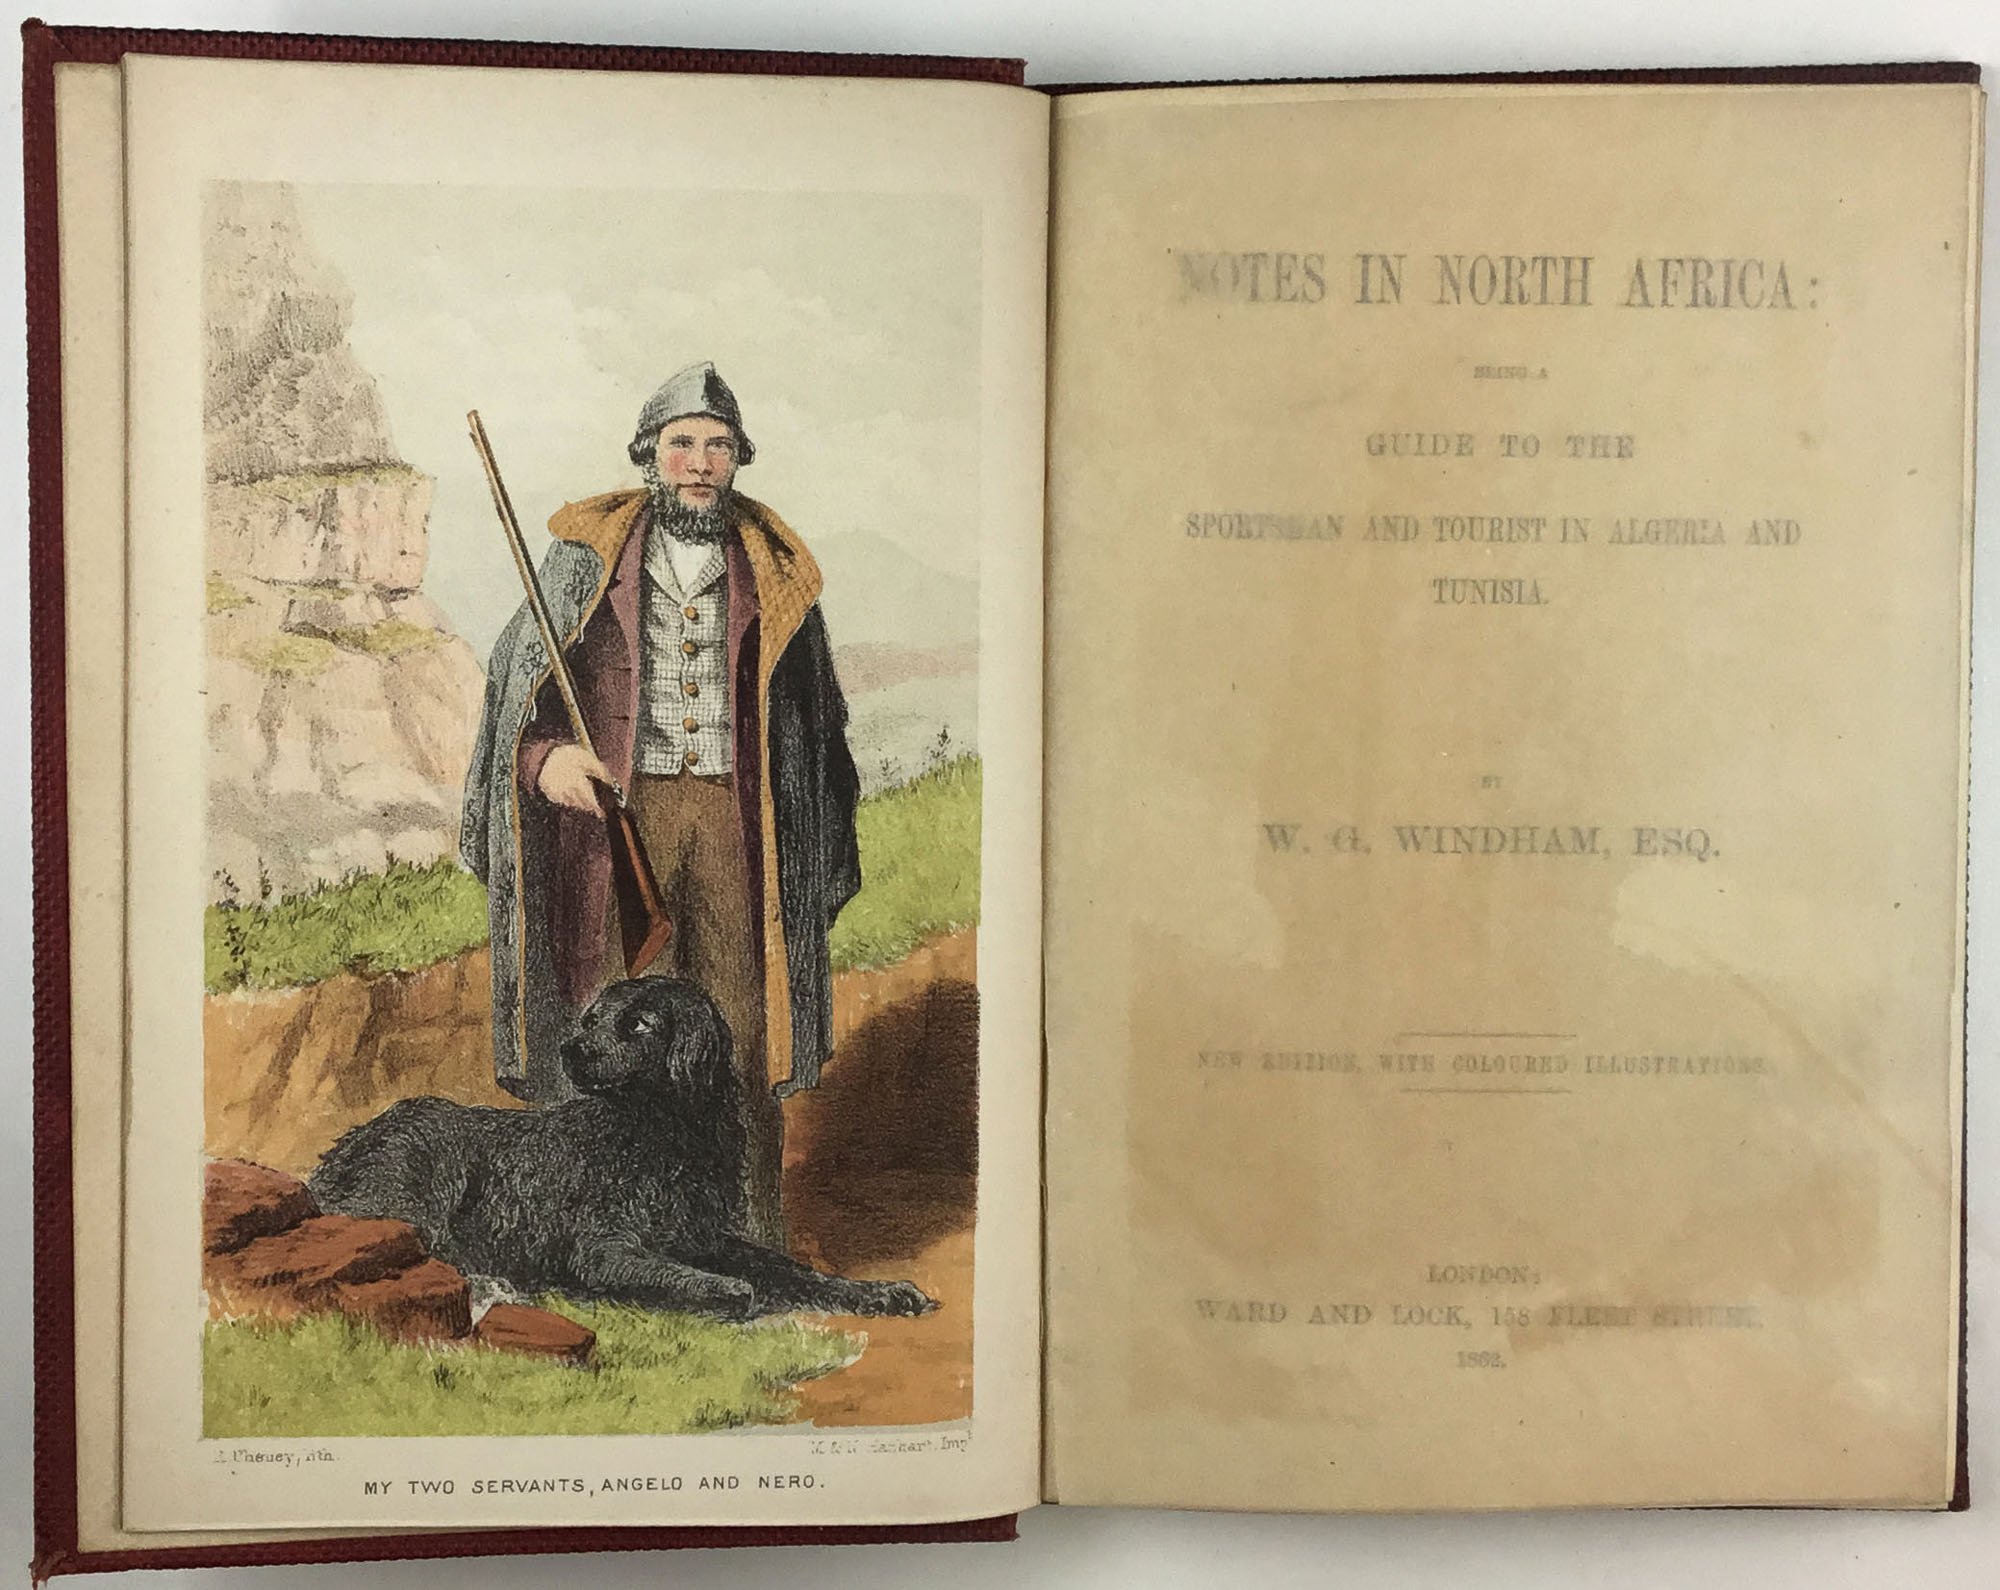 Lot image - WINDHAM, W. G.  Notes in North Africa: being a guide to the sportsman and tourist in Algeria and Tunisia.